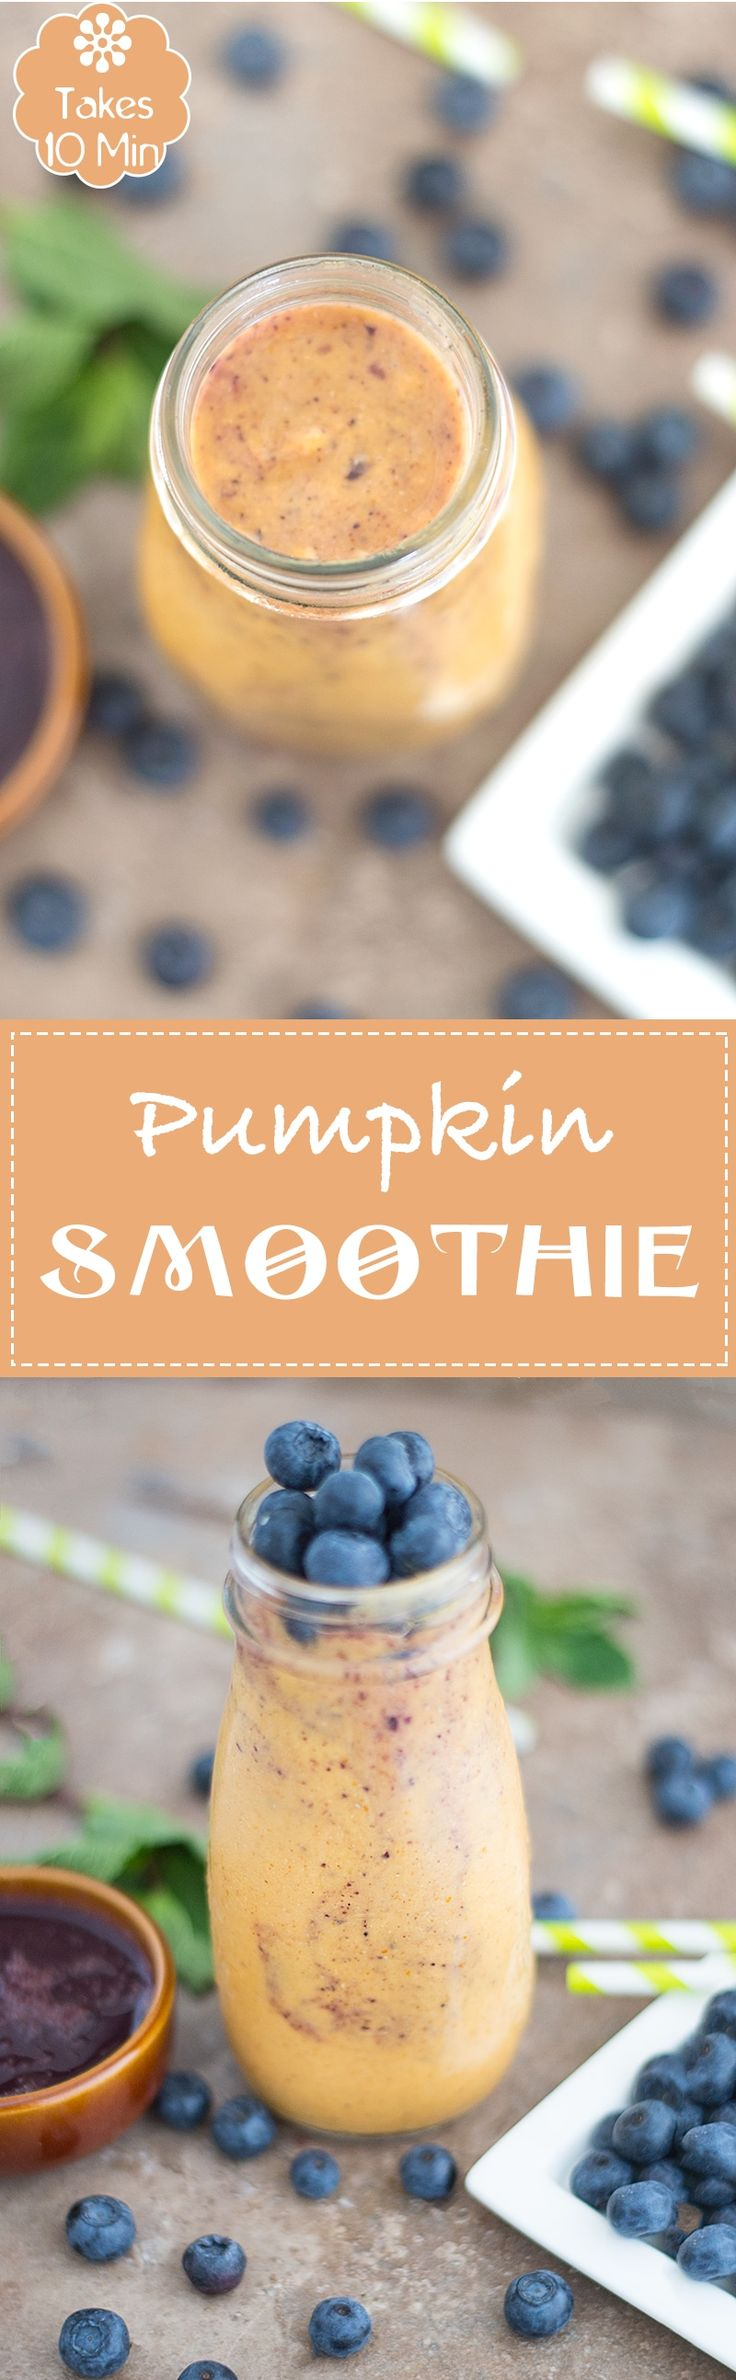 Vegan Pumpkin Smoothie Made with Coconut Milk with Cinnamon and Nutmeg to Make it Festive.  Make Blueberry Syrup at Home to Add to the Smoothie | Pumpkin recipes, pumpkin smoothies, breakfast smoothies, easy smoothies, fruit smoothies